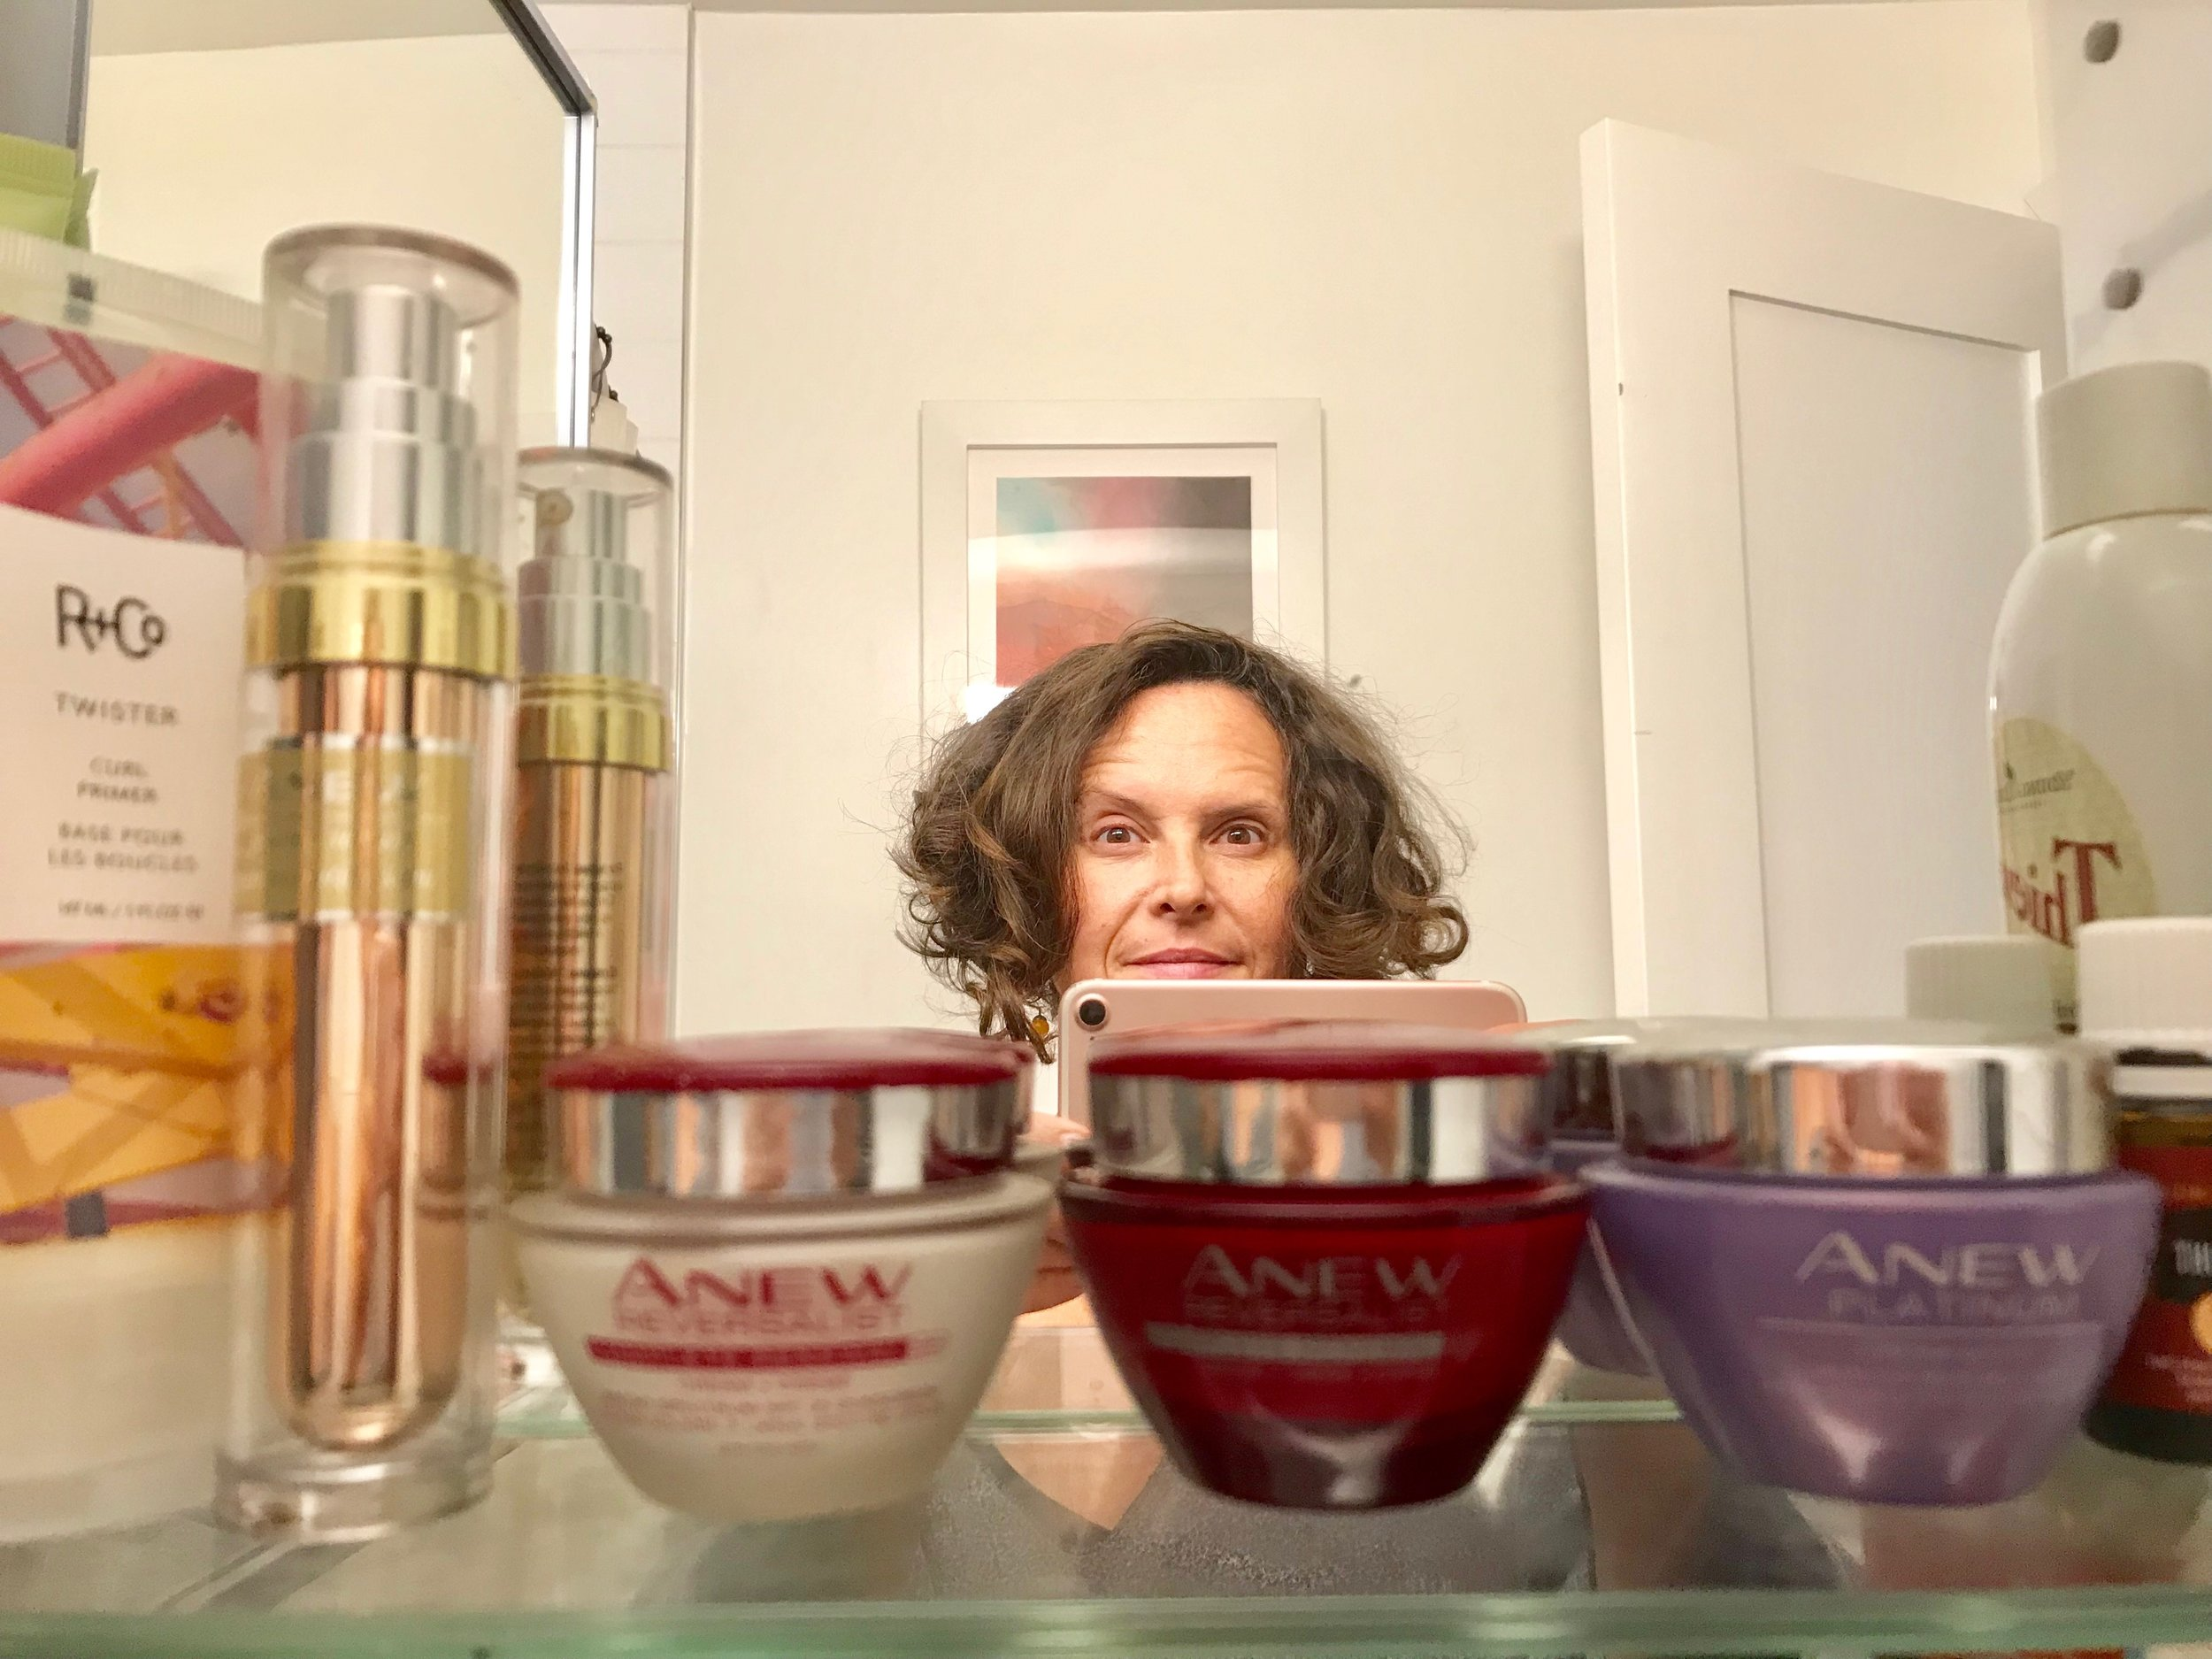 Here is my medicine cabinet and my sleepy eyes at one in the morning as I am writing the blog. I use the AVON Anew lineup and they are all on sale!